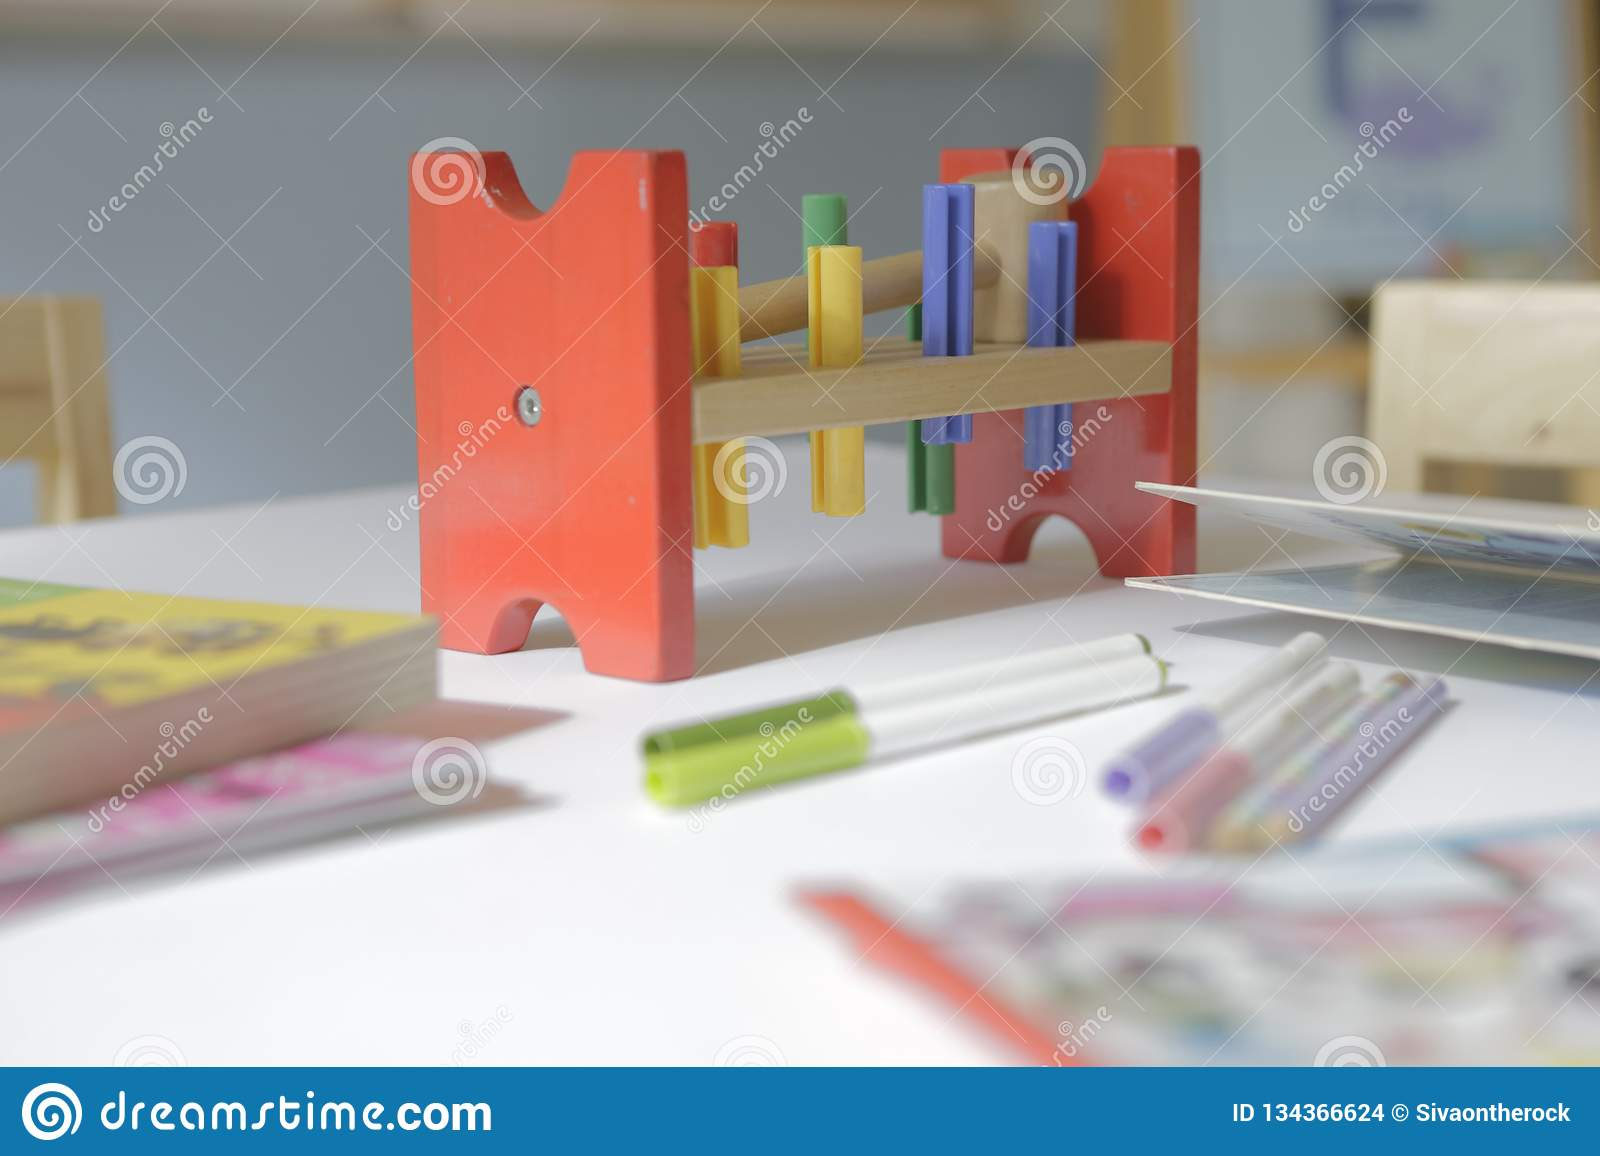 Wood Toy In The Peg Design Stock Photo Image Of Game 134366624